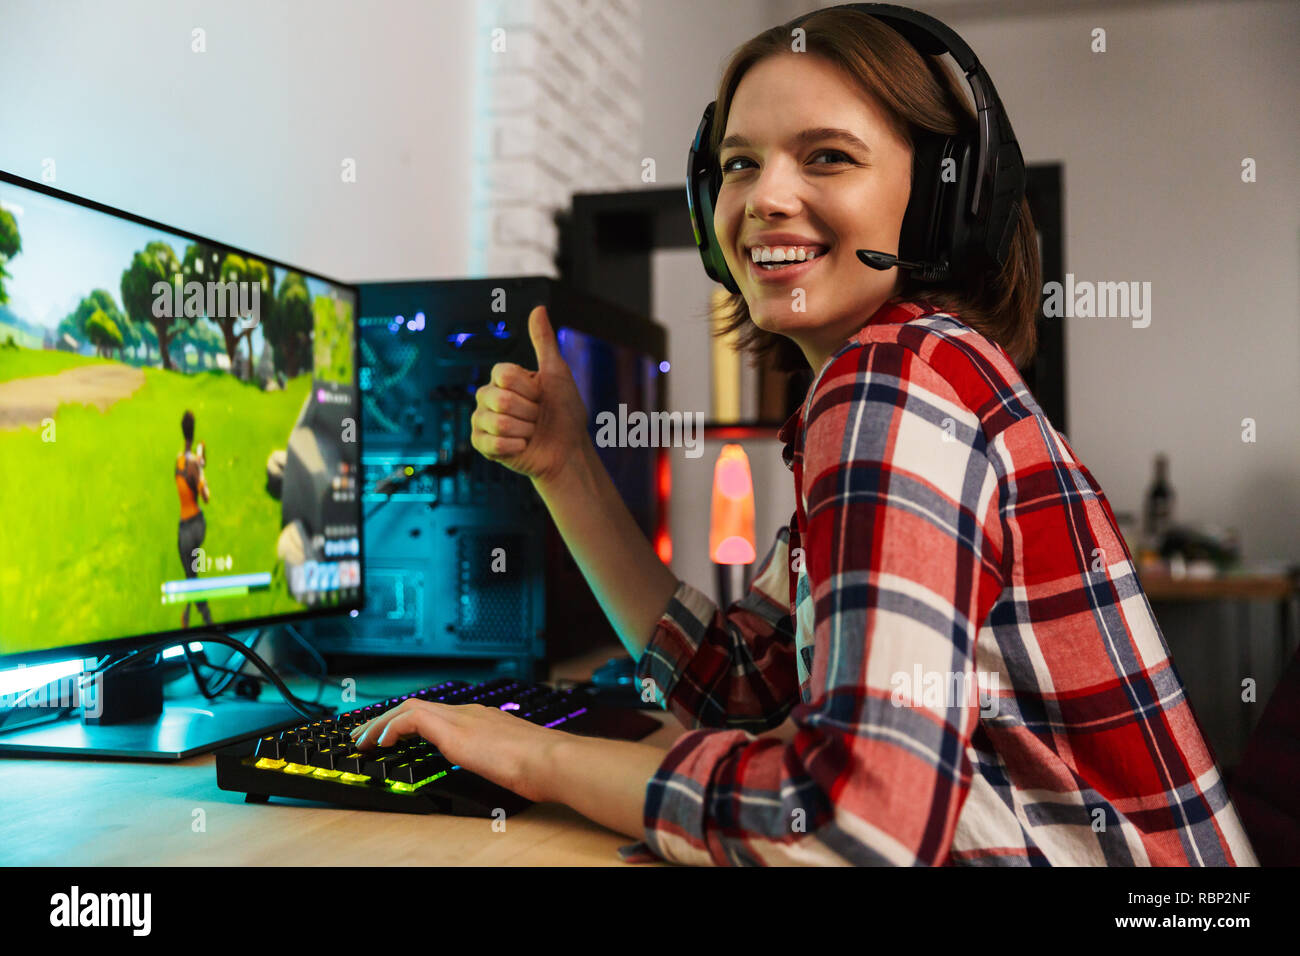 Portrait of an excited young woman wearing headphones sitting at the table, playing computer online games Stock Photo